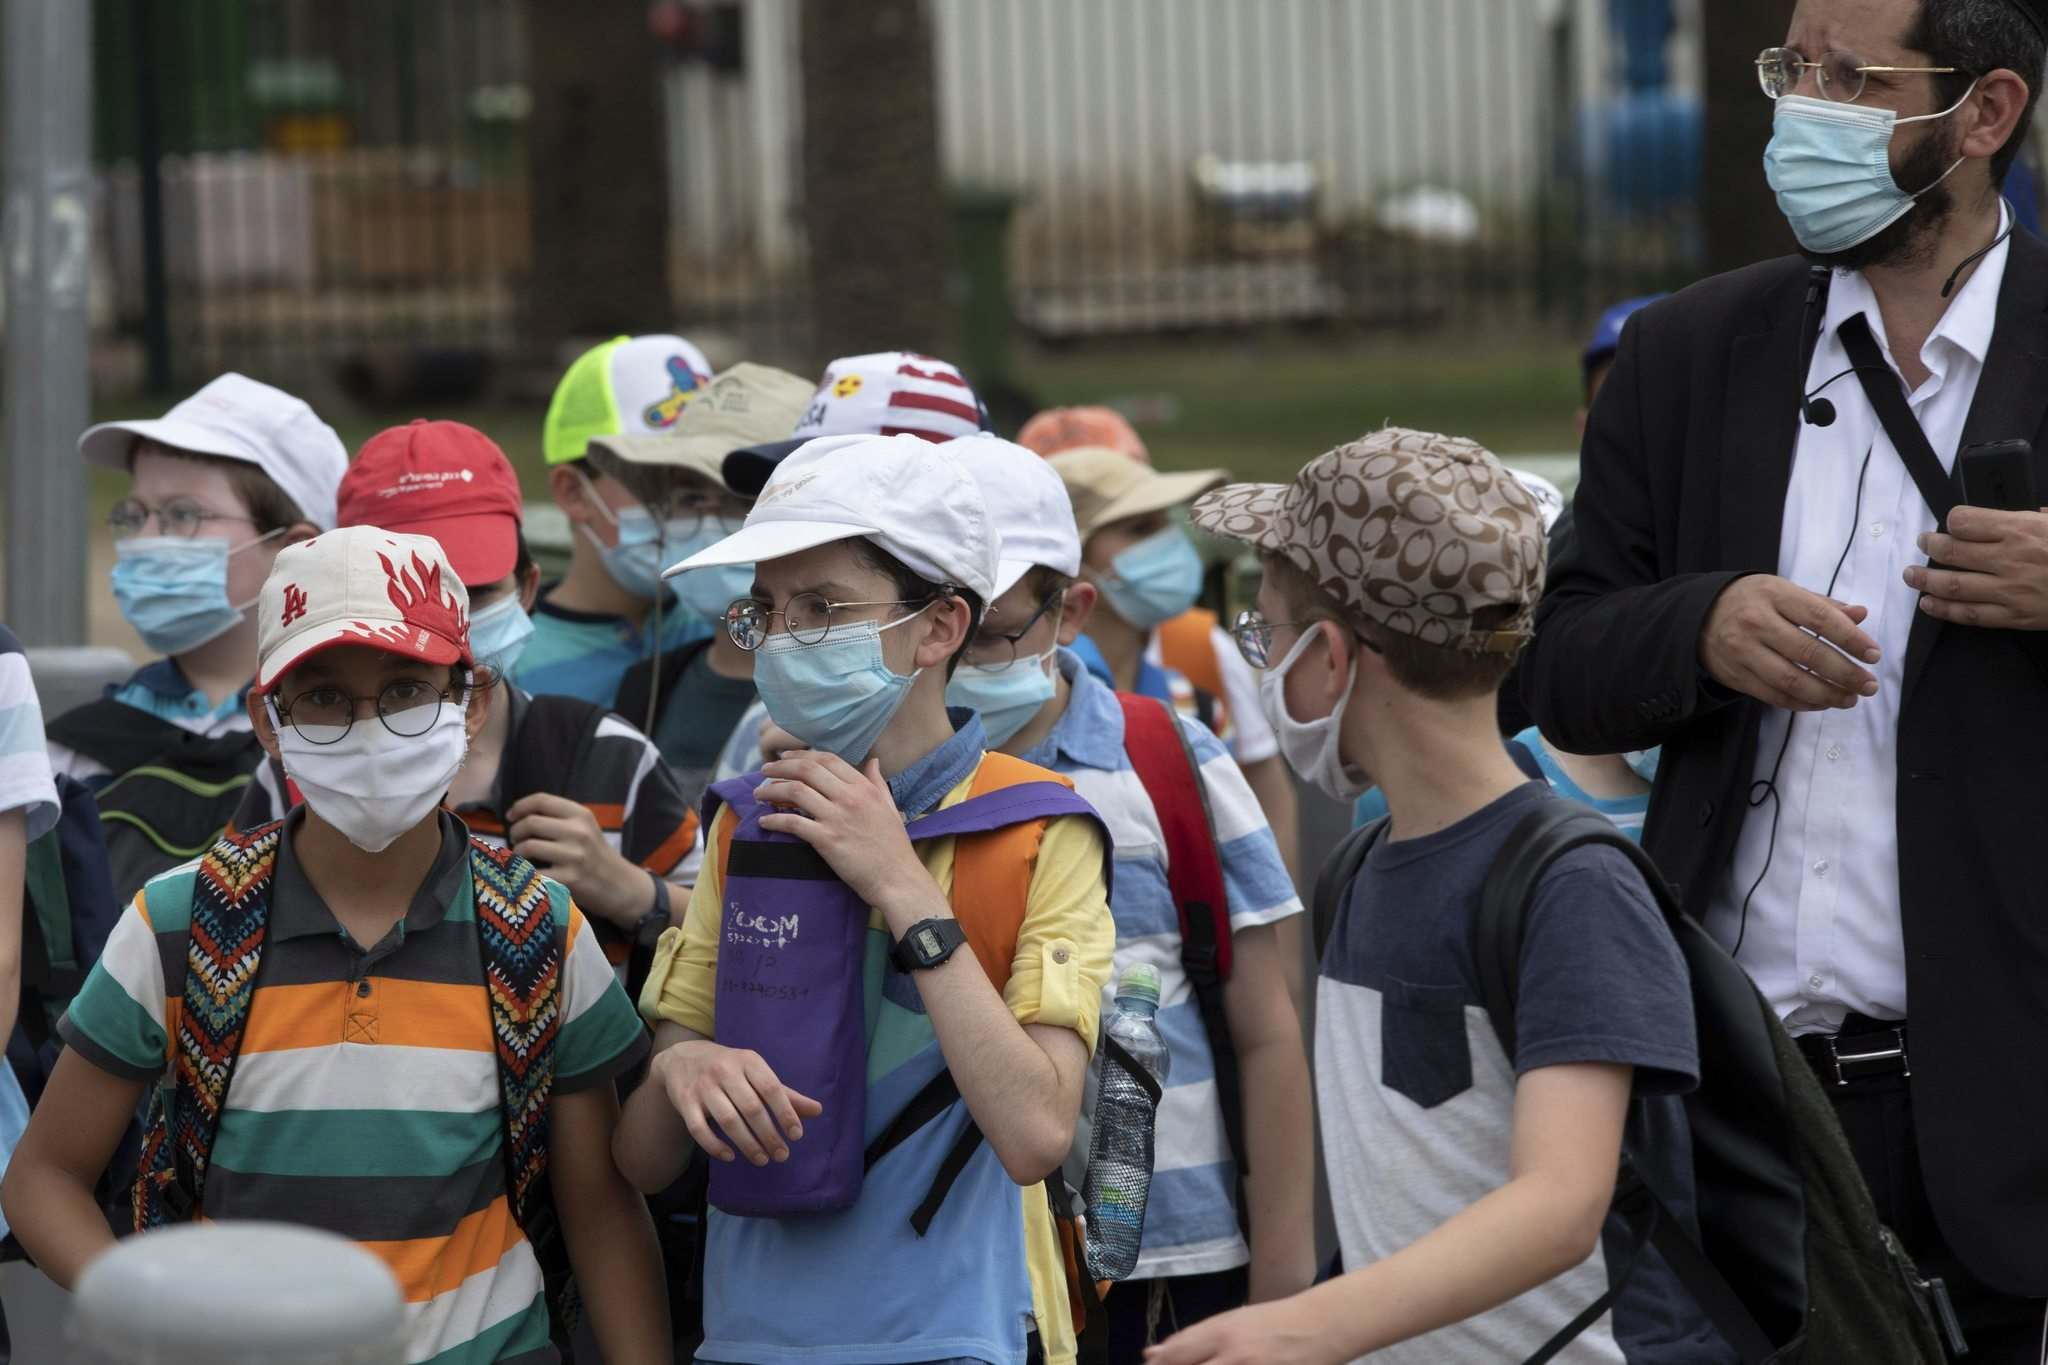 Israeli schoolchildren wear masks in Tel Aviv last month. After Israel opened businesses and schools, COVID-19 cases began to pop up. Hundreds of schools were forced to close again. (Sebastian Scheiner / The Associated Press files)